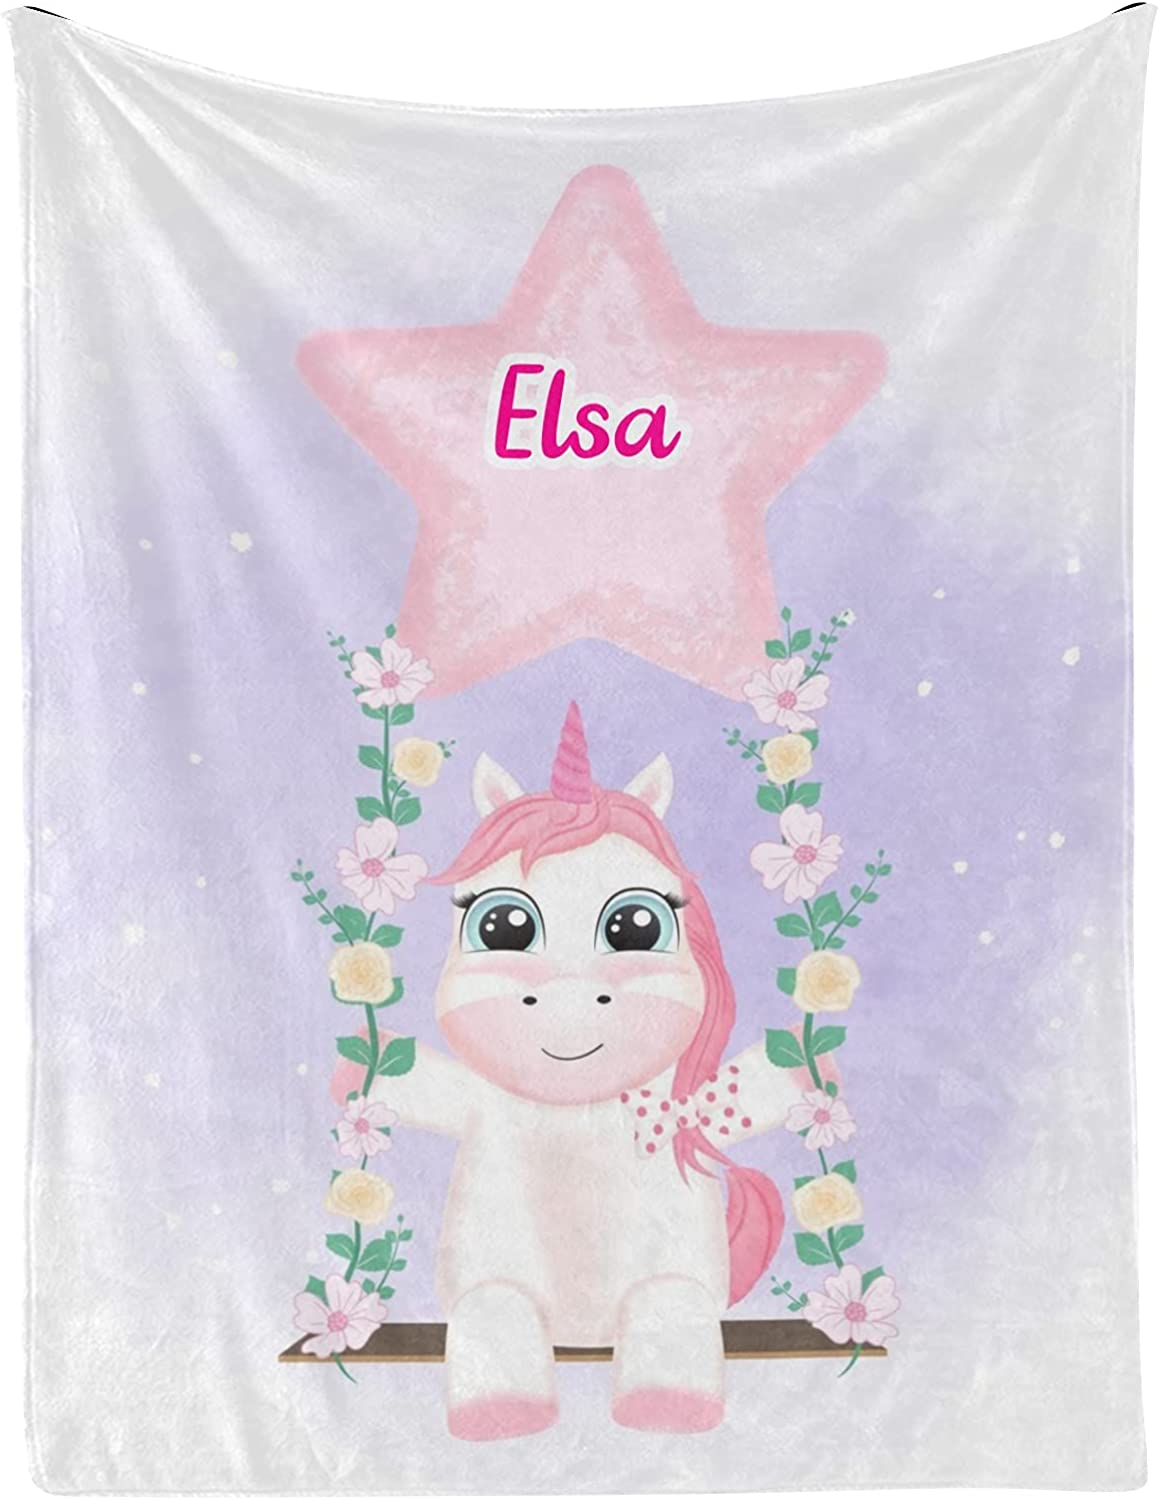 Unicorn Sale Swing Star Manufacturer regenerated product Flower Personalized Name with 3 Baby Blankets